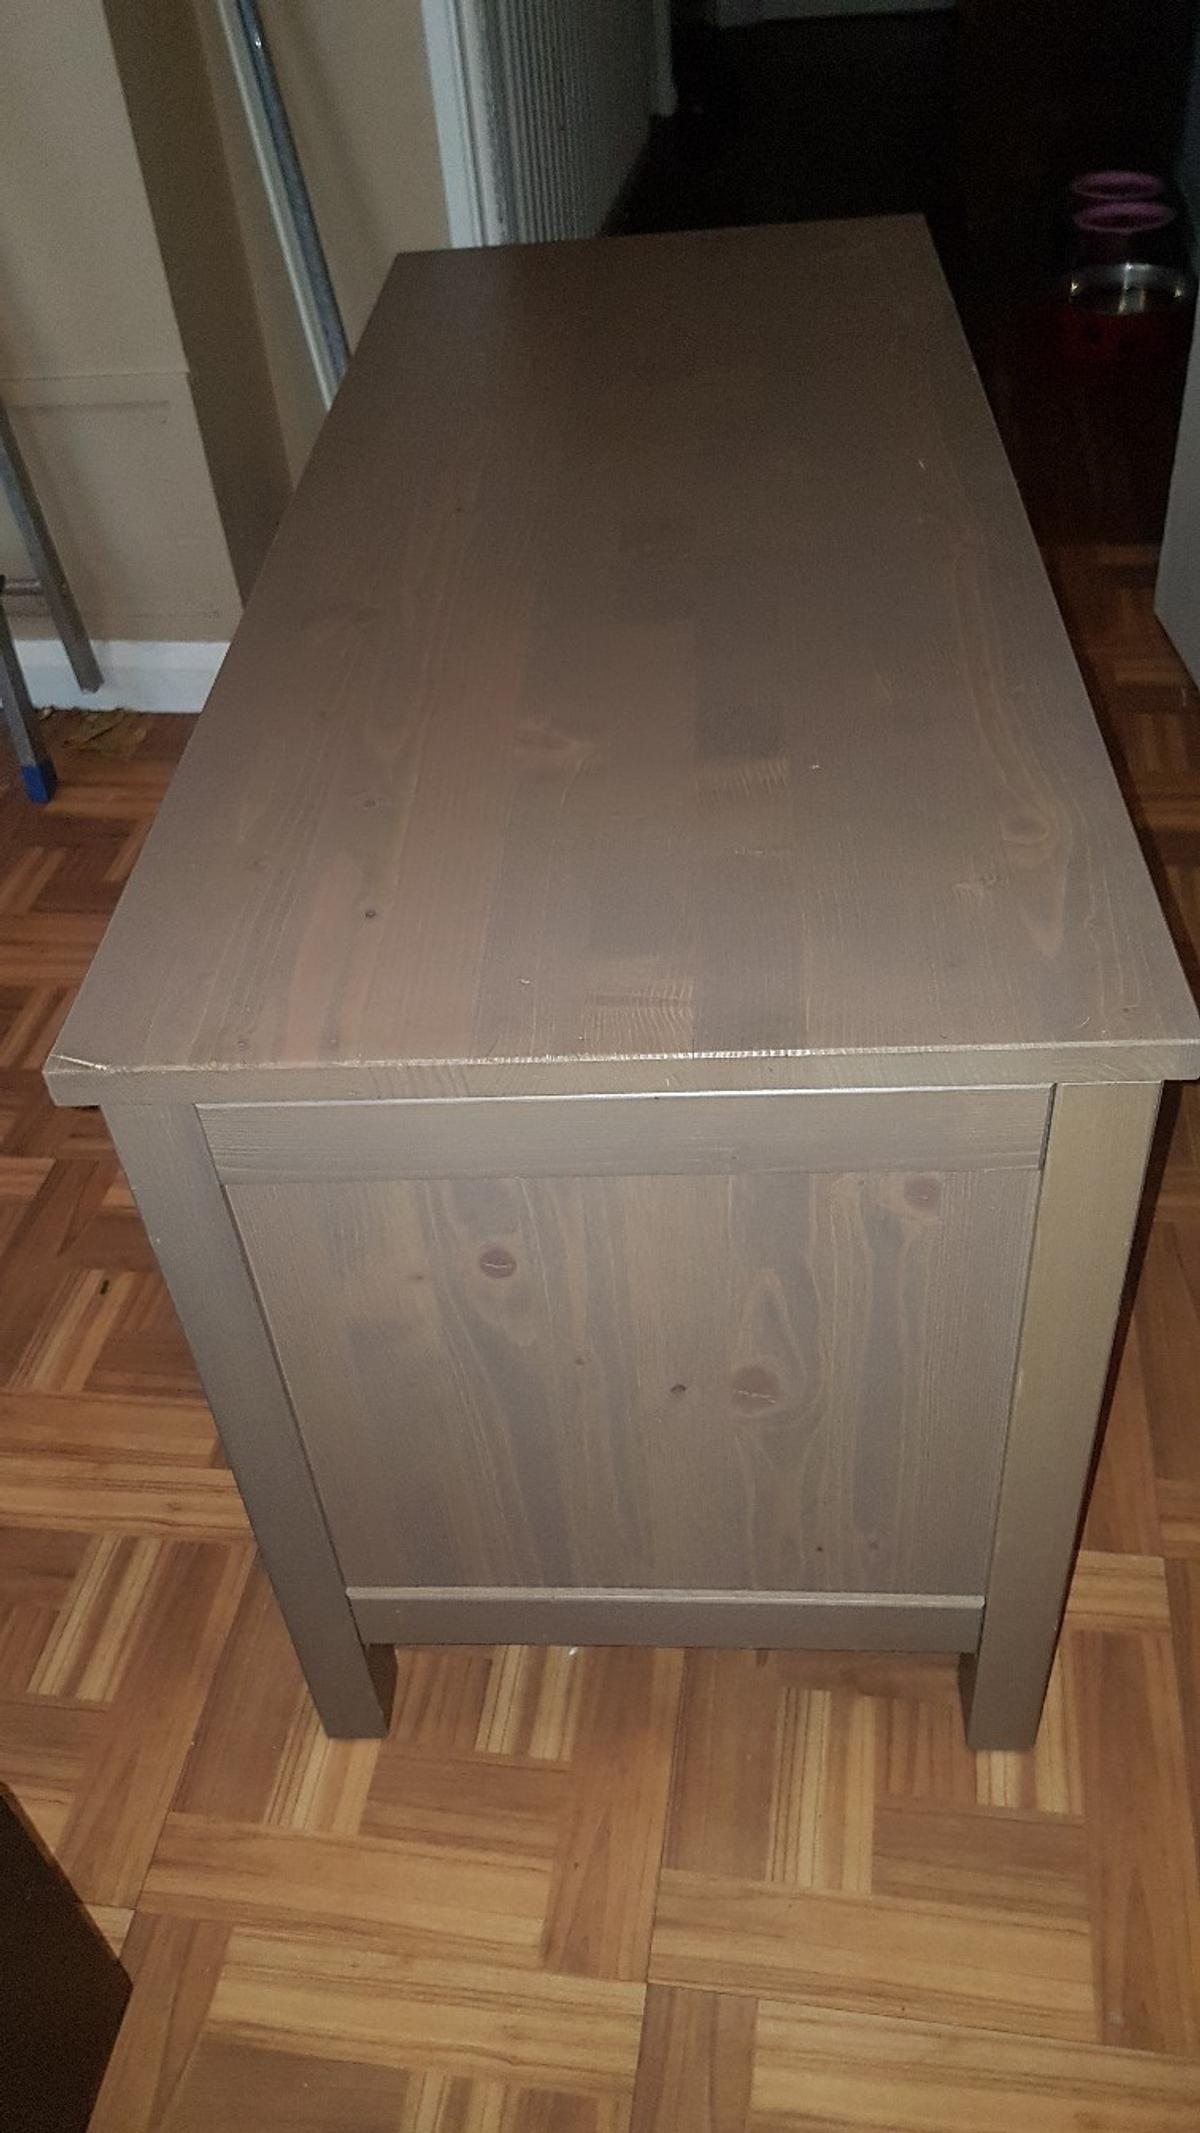 SOLID WOOD 2 DRAW TV UNIT LIGHT BROWN in W9 London for